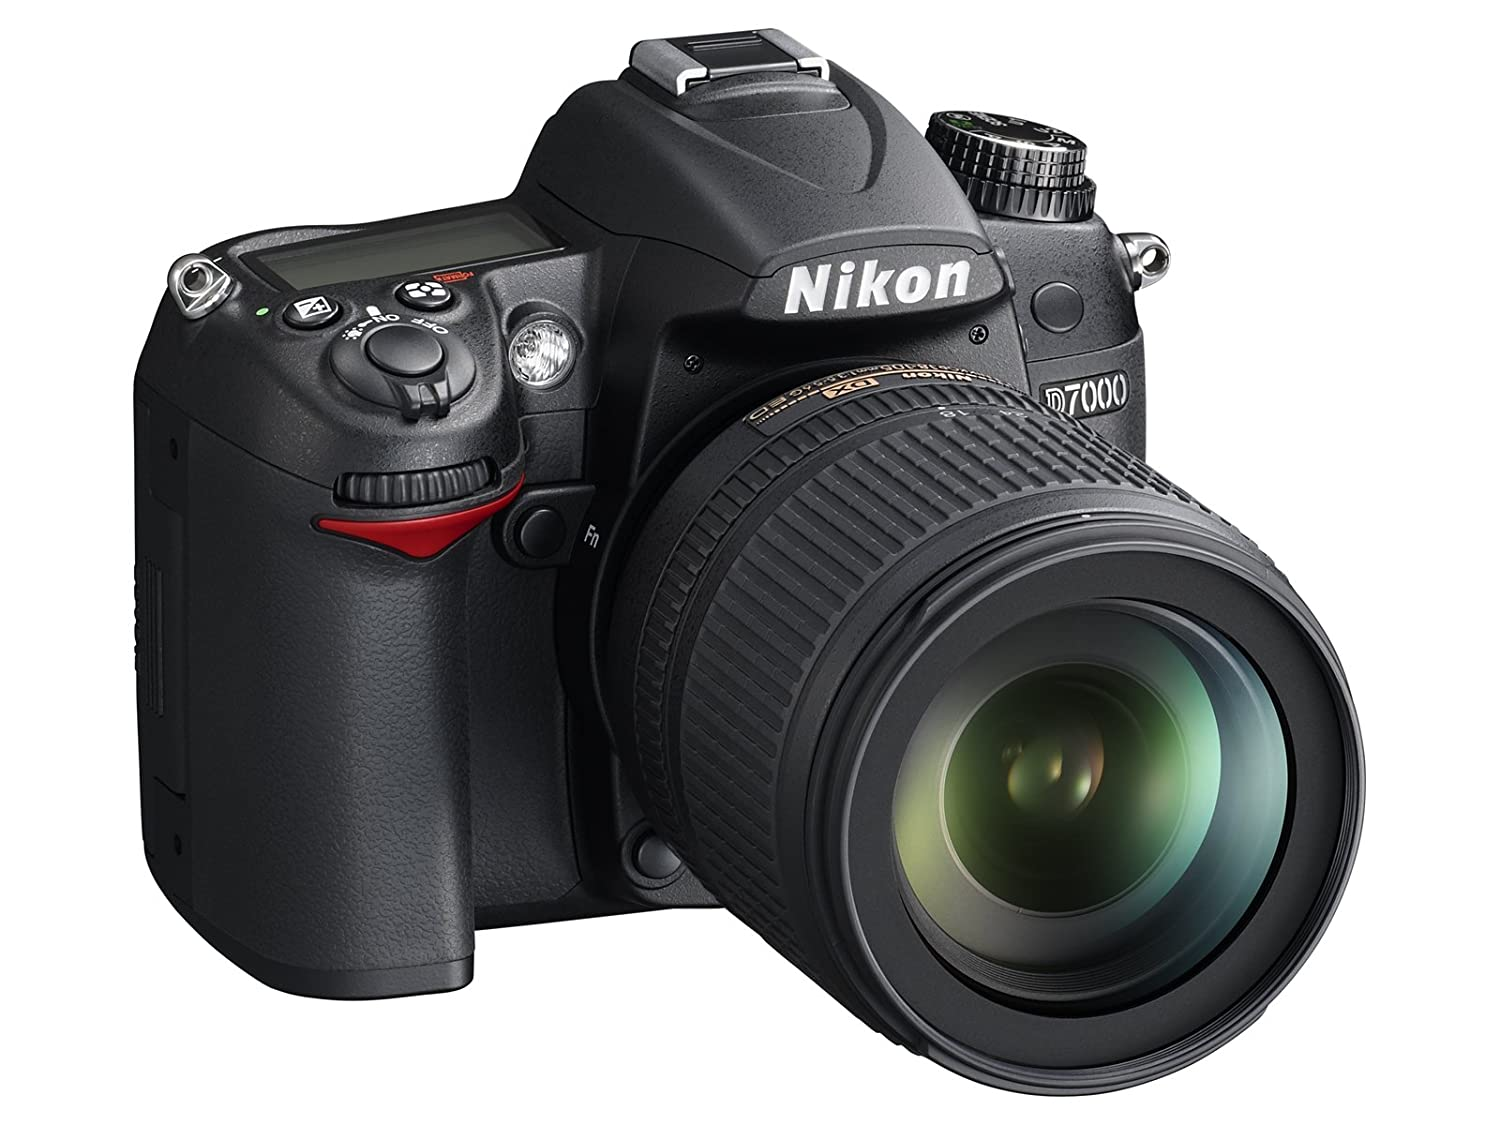 Camera Good Nikon Dslr Camera amazon com nikon d7000 16 2 megapixel digital slr camera with 18 105mm lens black cameras photo